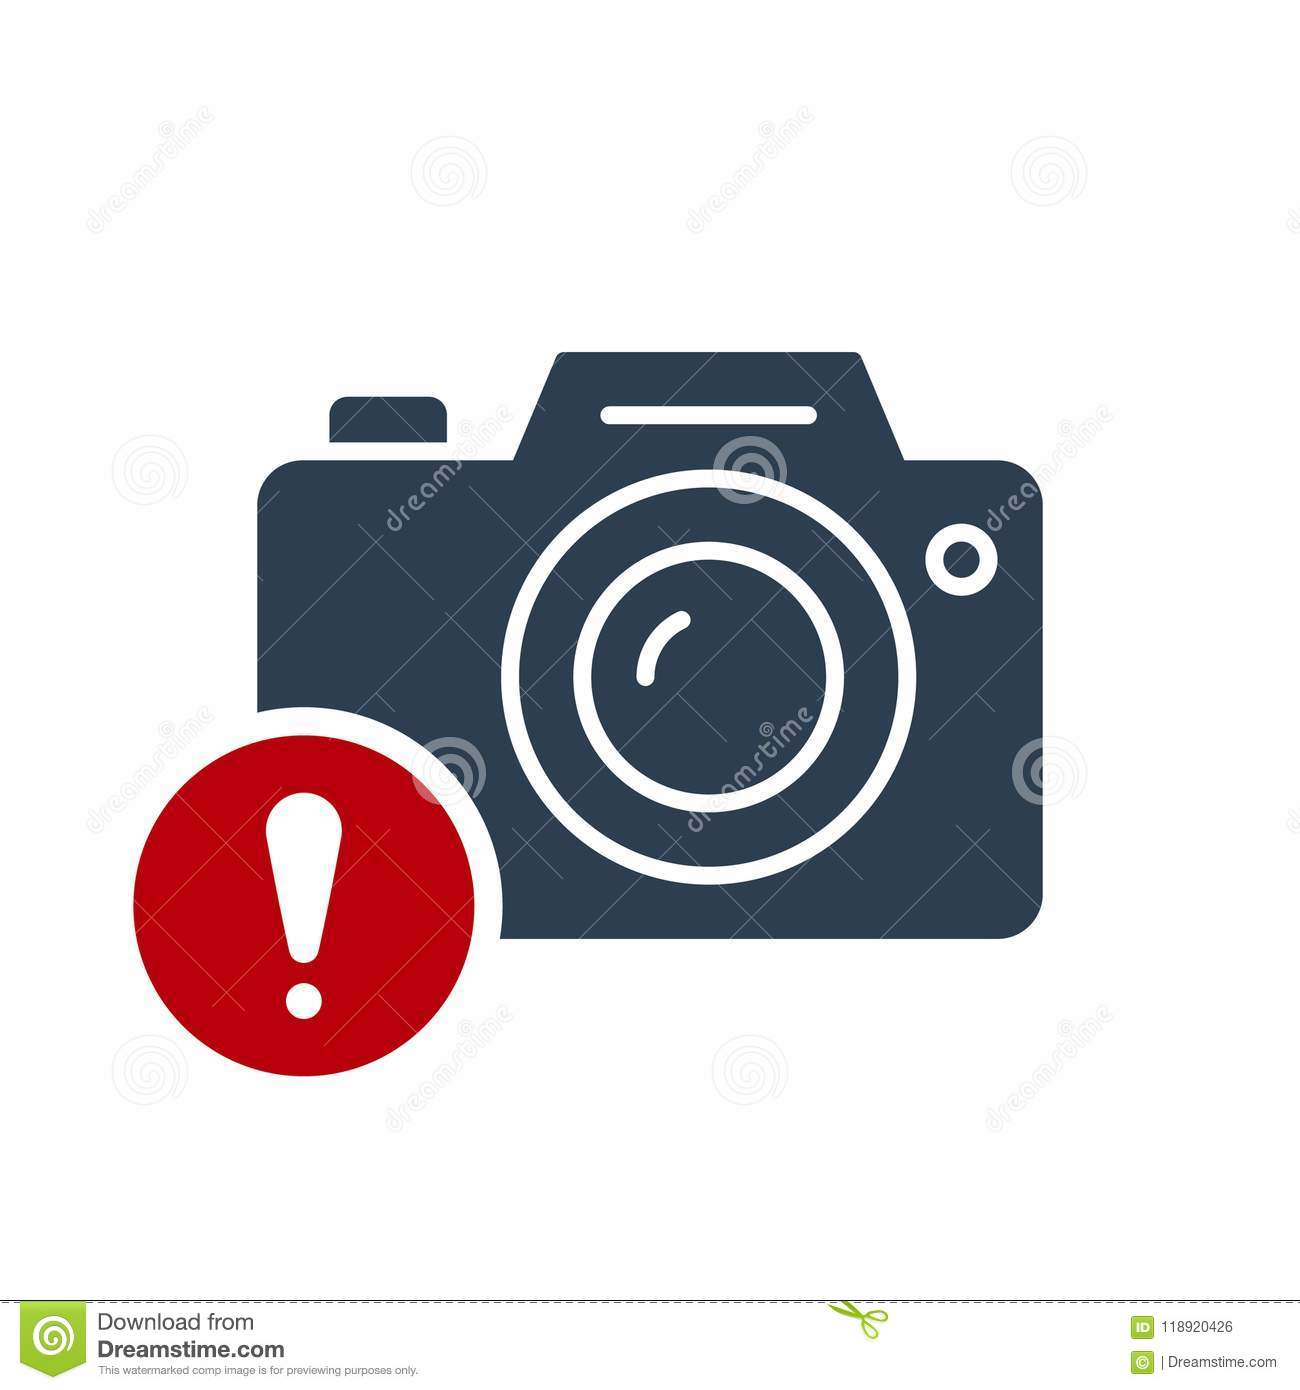 Photo camera icon, technology icon with exclamation mark. Photo camera icon and alert, error, alarm, danger symbol